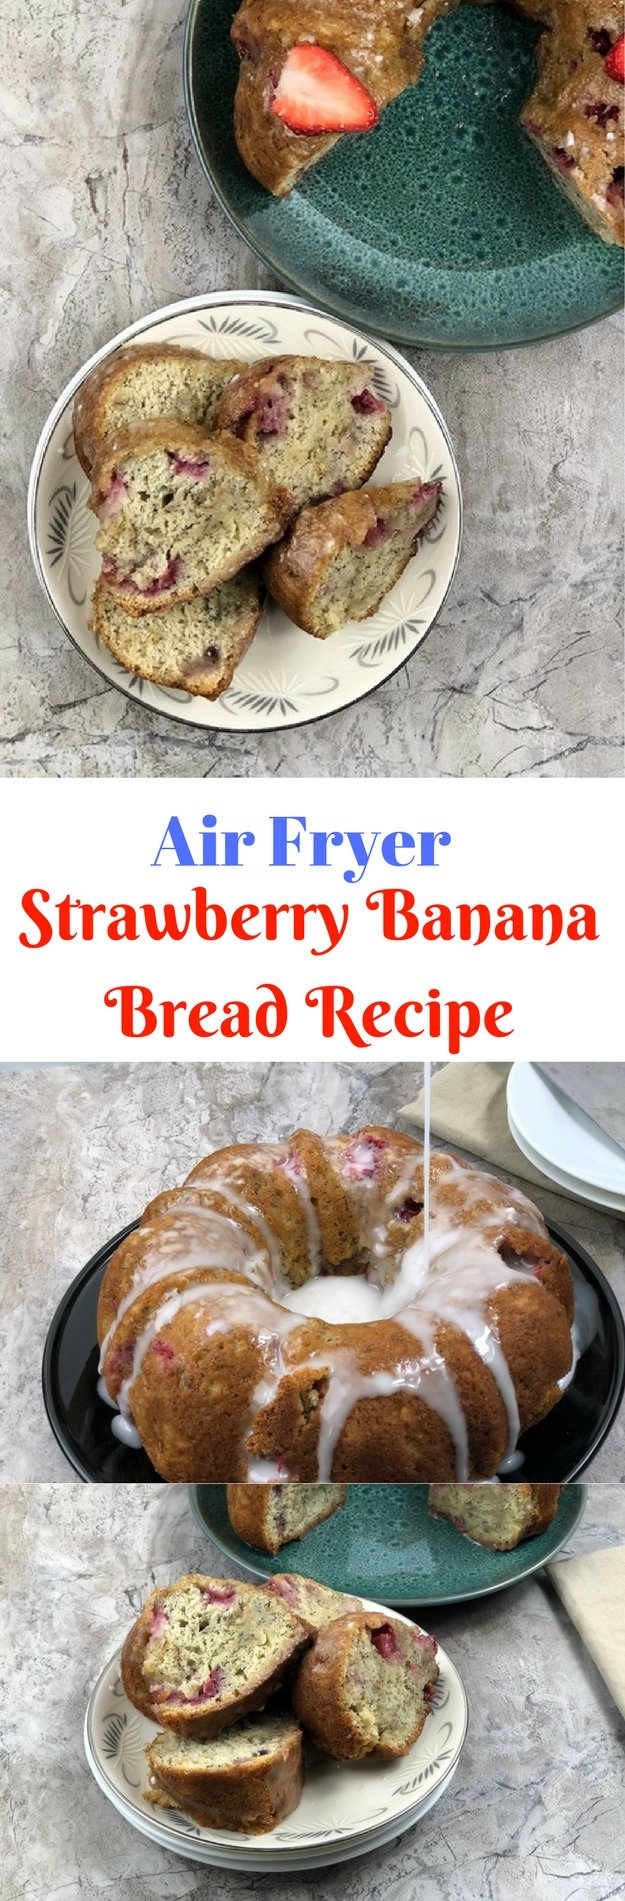 Air Fryer Strawberry Banana Bread Recipe the most magical things on earth include strawberries and bananas. I mean think about that breakfast smoothie you had with the strawberries and bananas, it was great, wasn't it. This bread was almost orgasmic, can I say that?